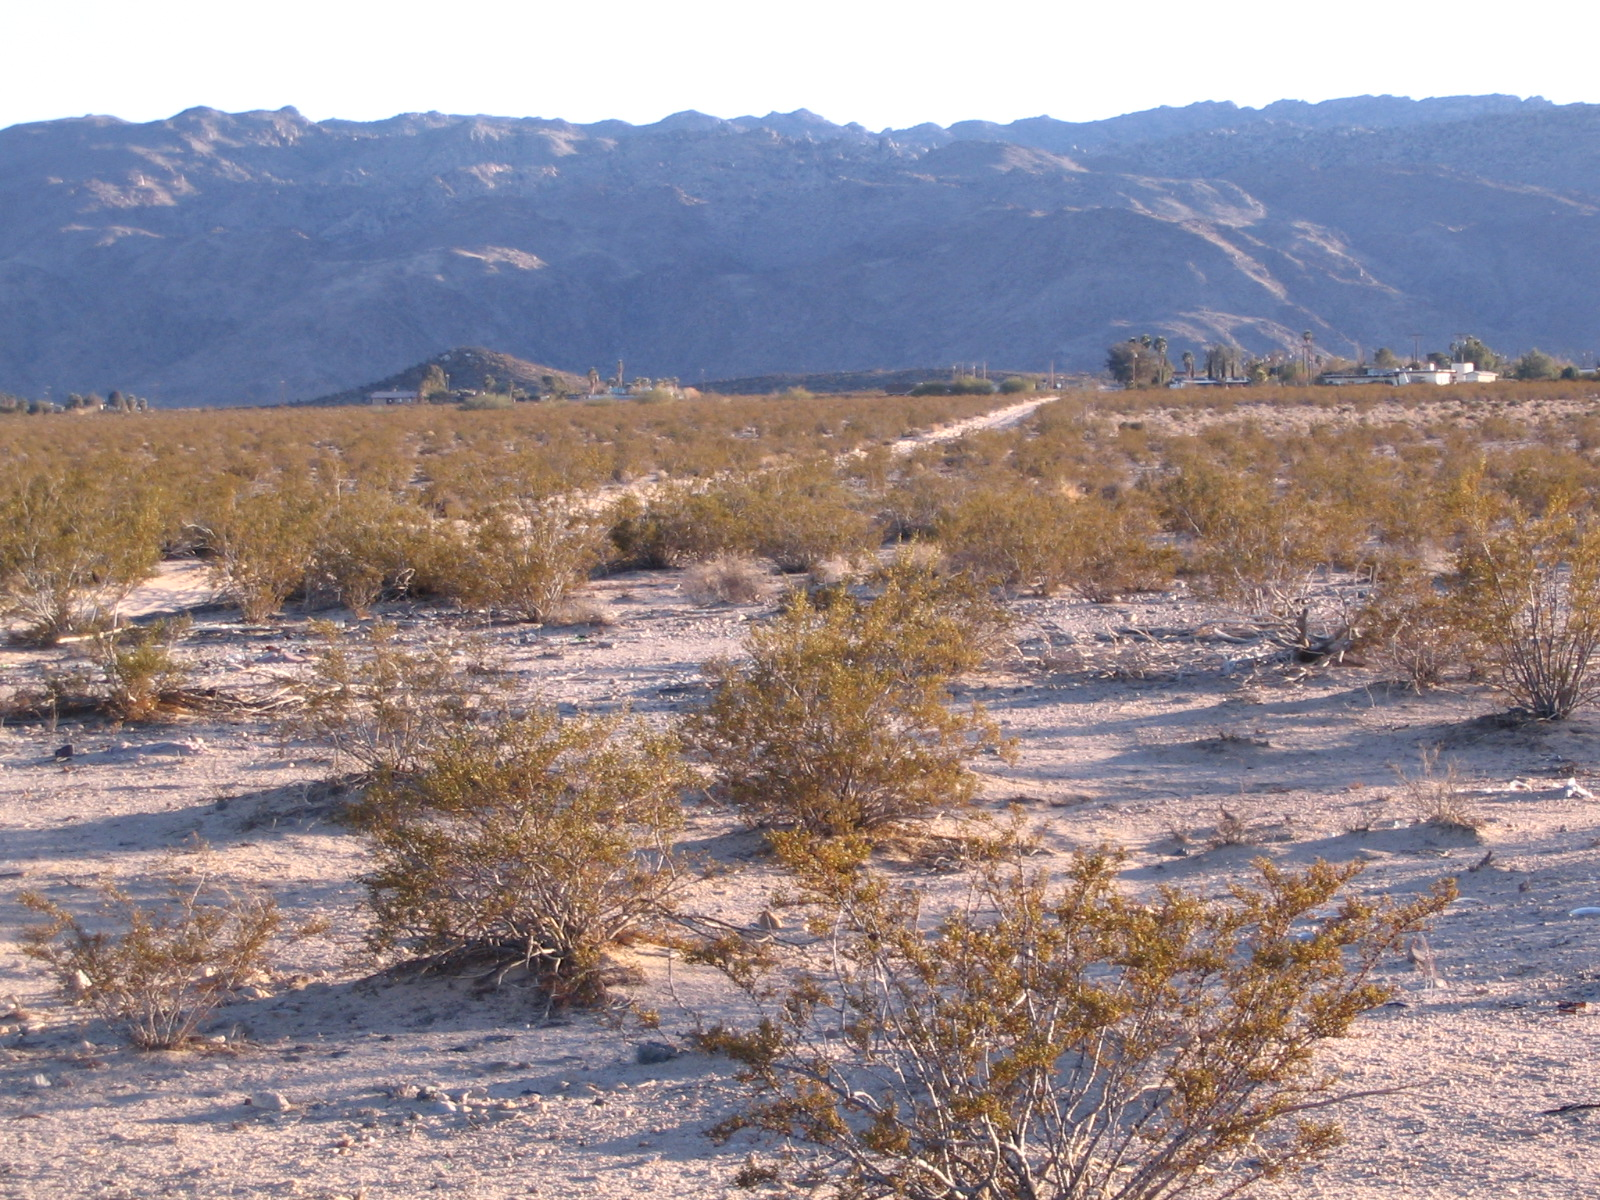 Joshua Tree National Park (in the background) Just 3 Miles From This Parcel!